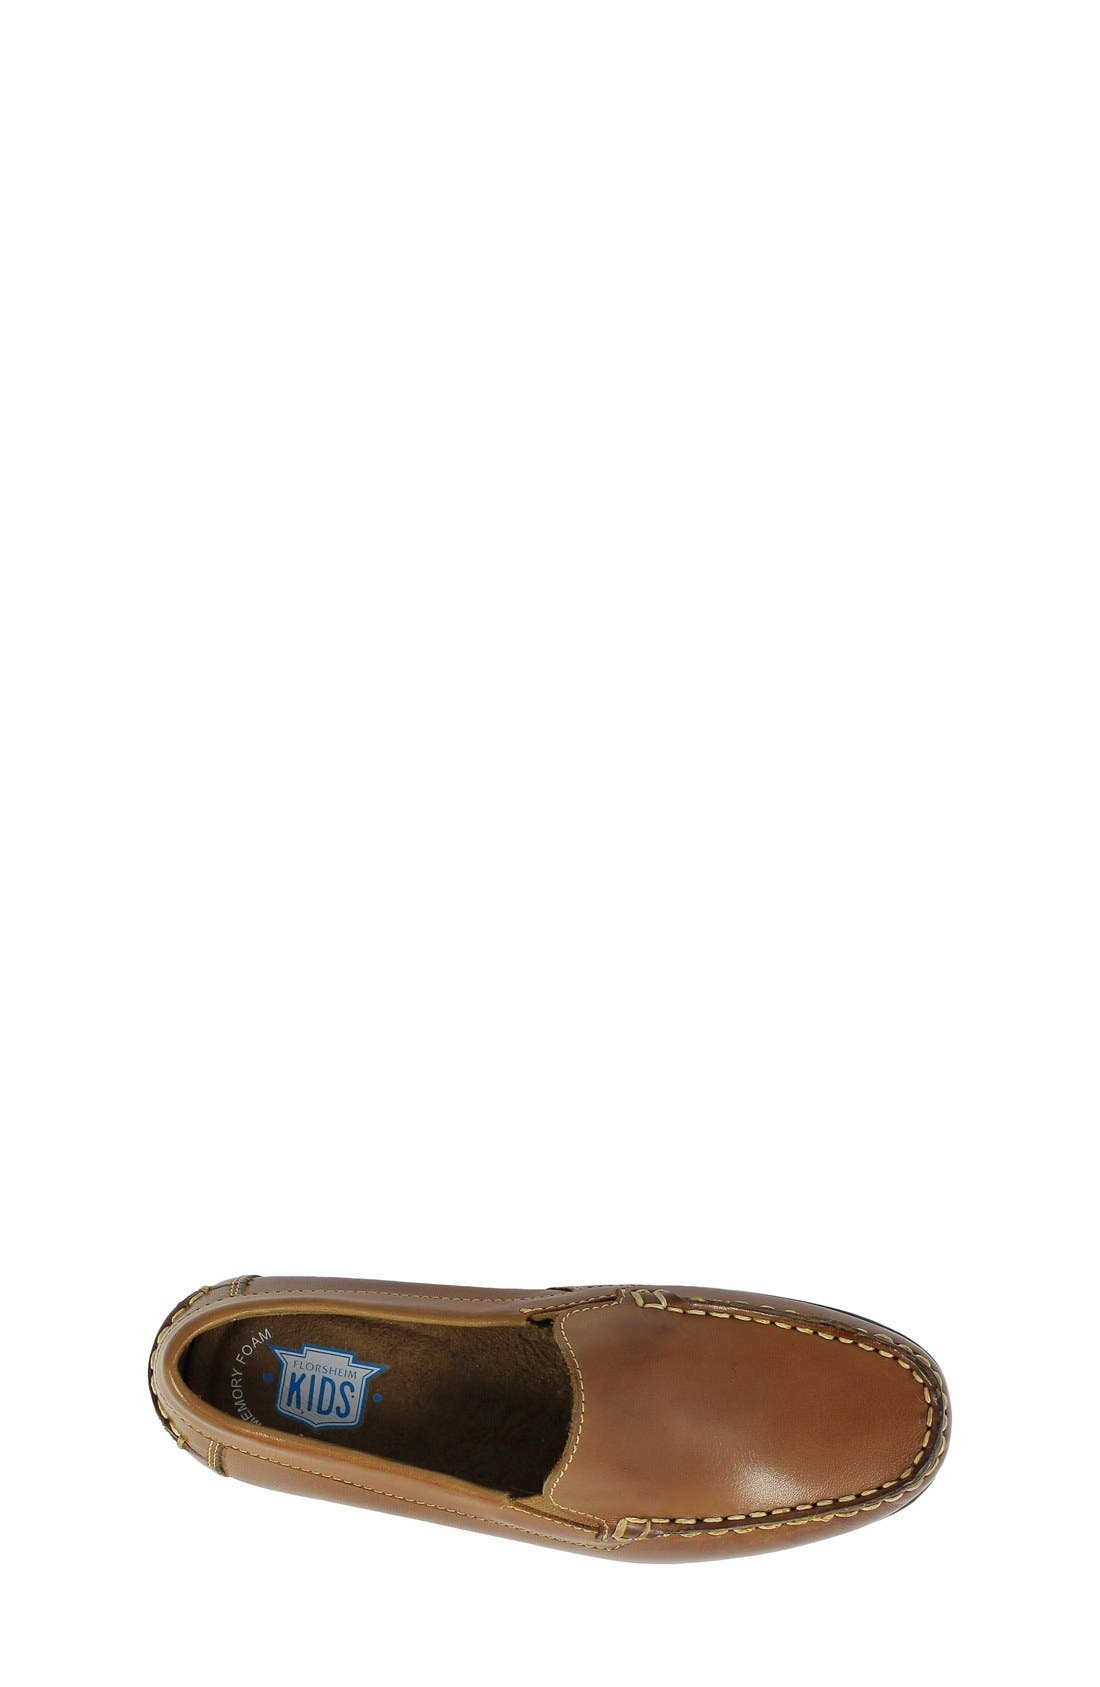 'Jasper - Venetian Jr.' Loafer,                             Alternate thumbnail 4, color,                             SADDLE TAN LEATHER